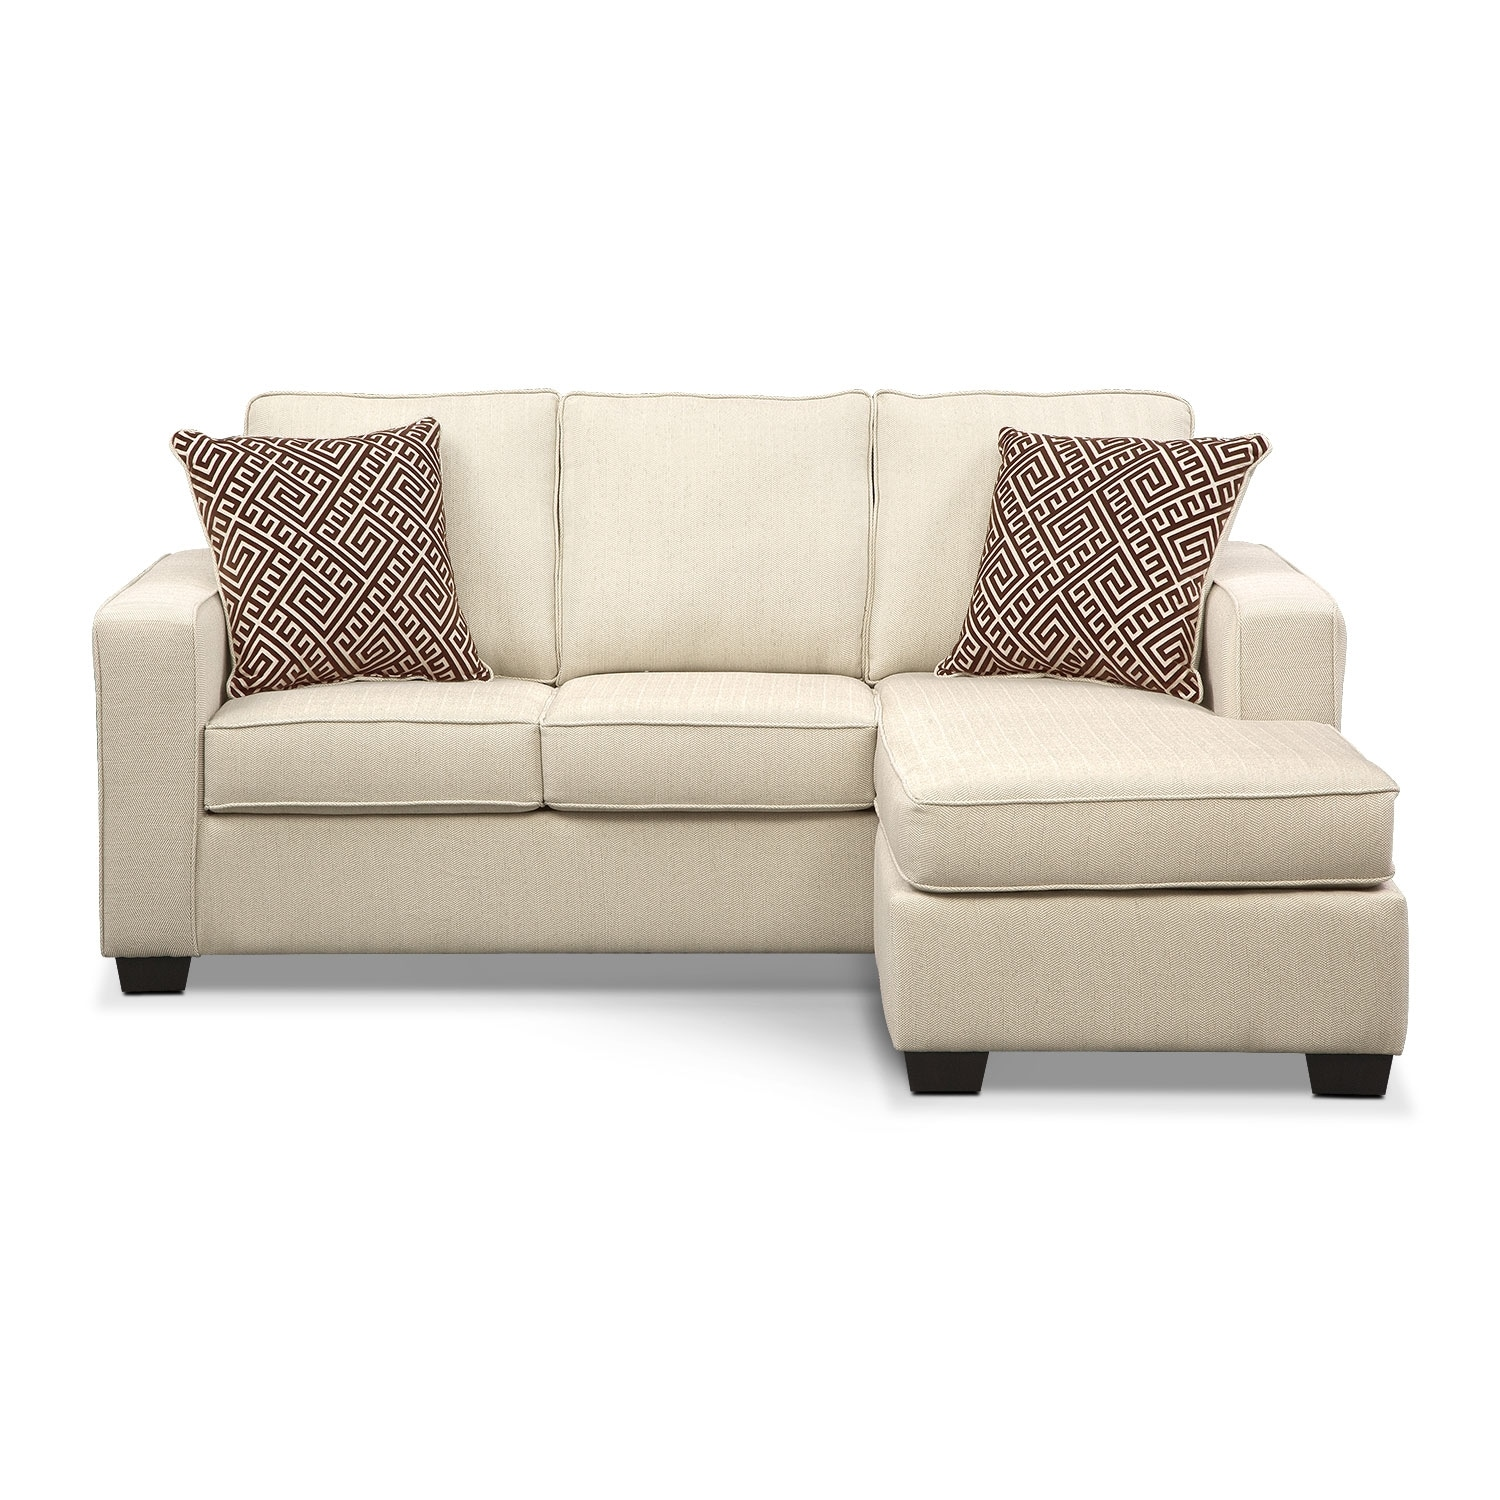 Sterling Innerspring Sleeper Sofa With Chaise Beige Value City Furniture And Mattresses